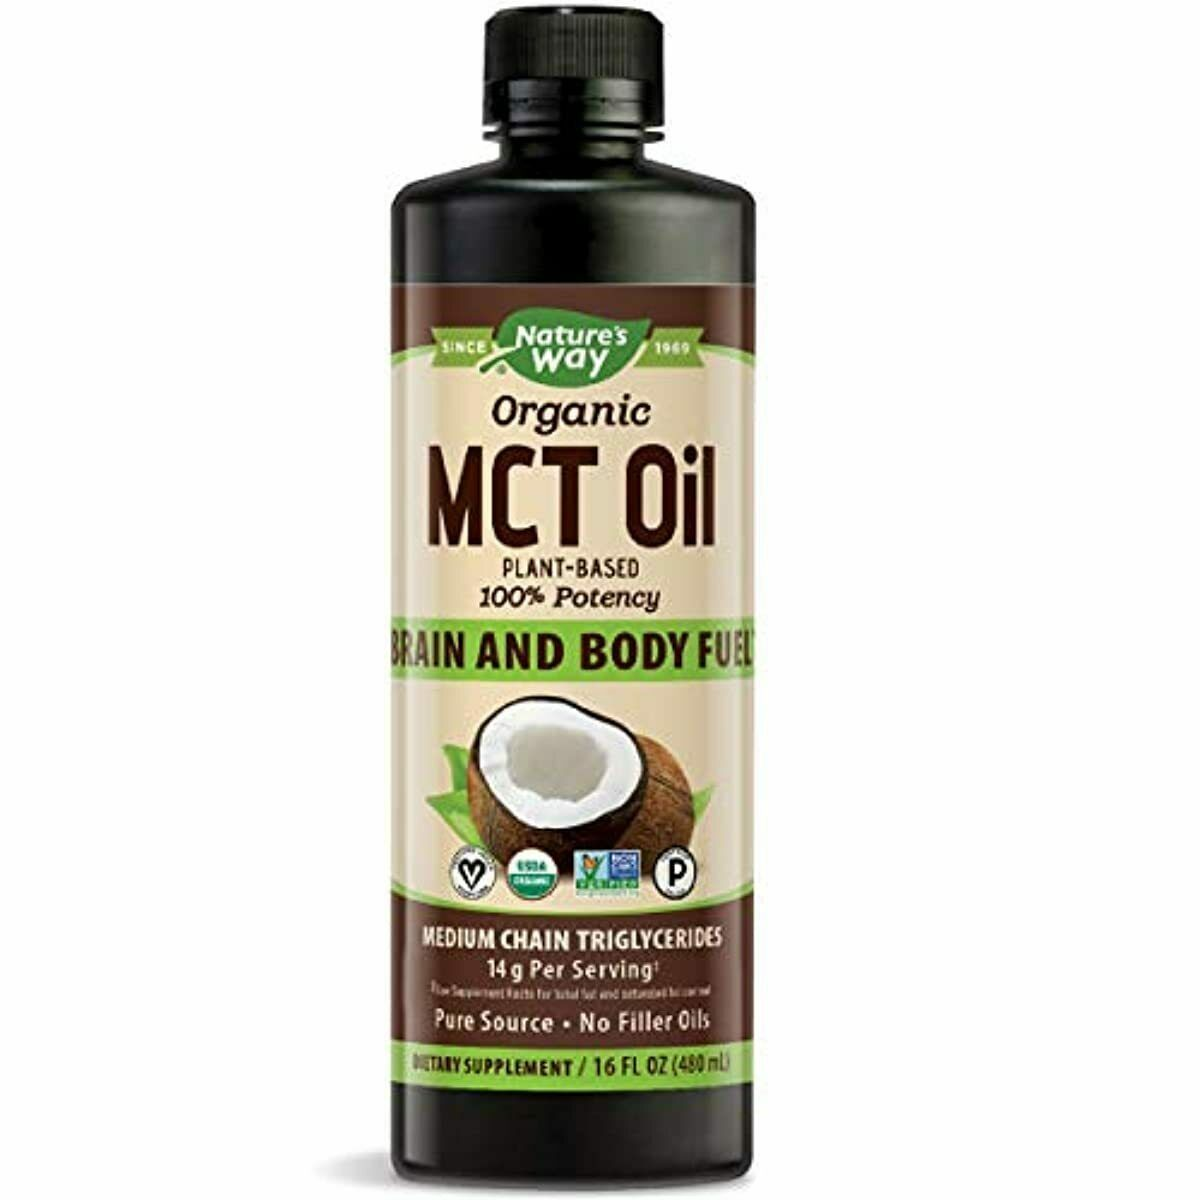 Nature's Way Organic MCT Oil From Coconut, Non-GMO, Gluten-free, 14 g MCTs  - $16.78 - $36.70